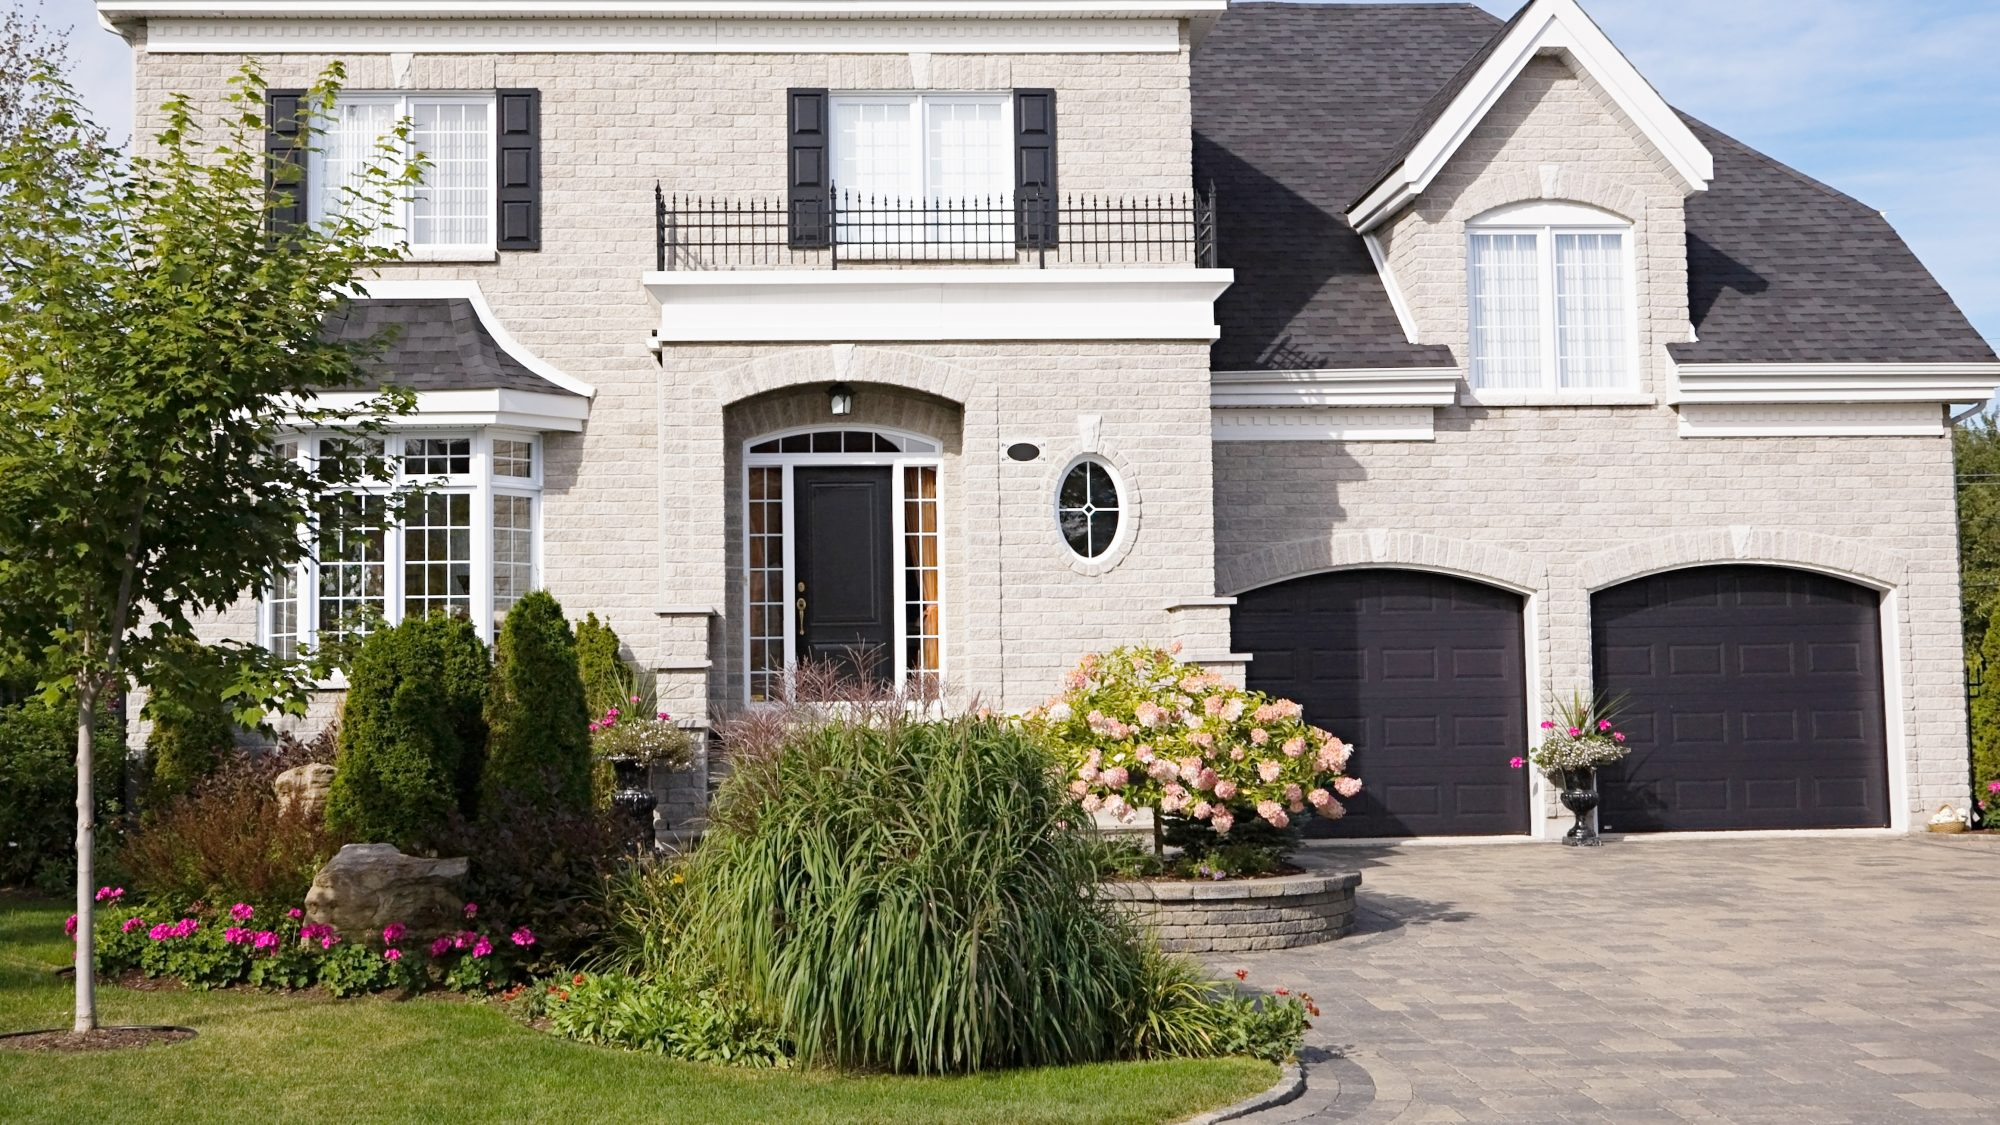 home exterior with front door and landscaping